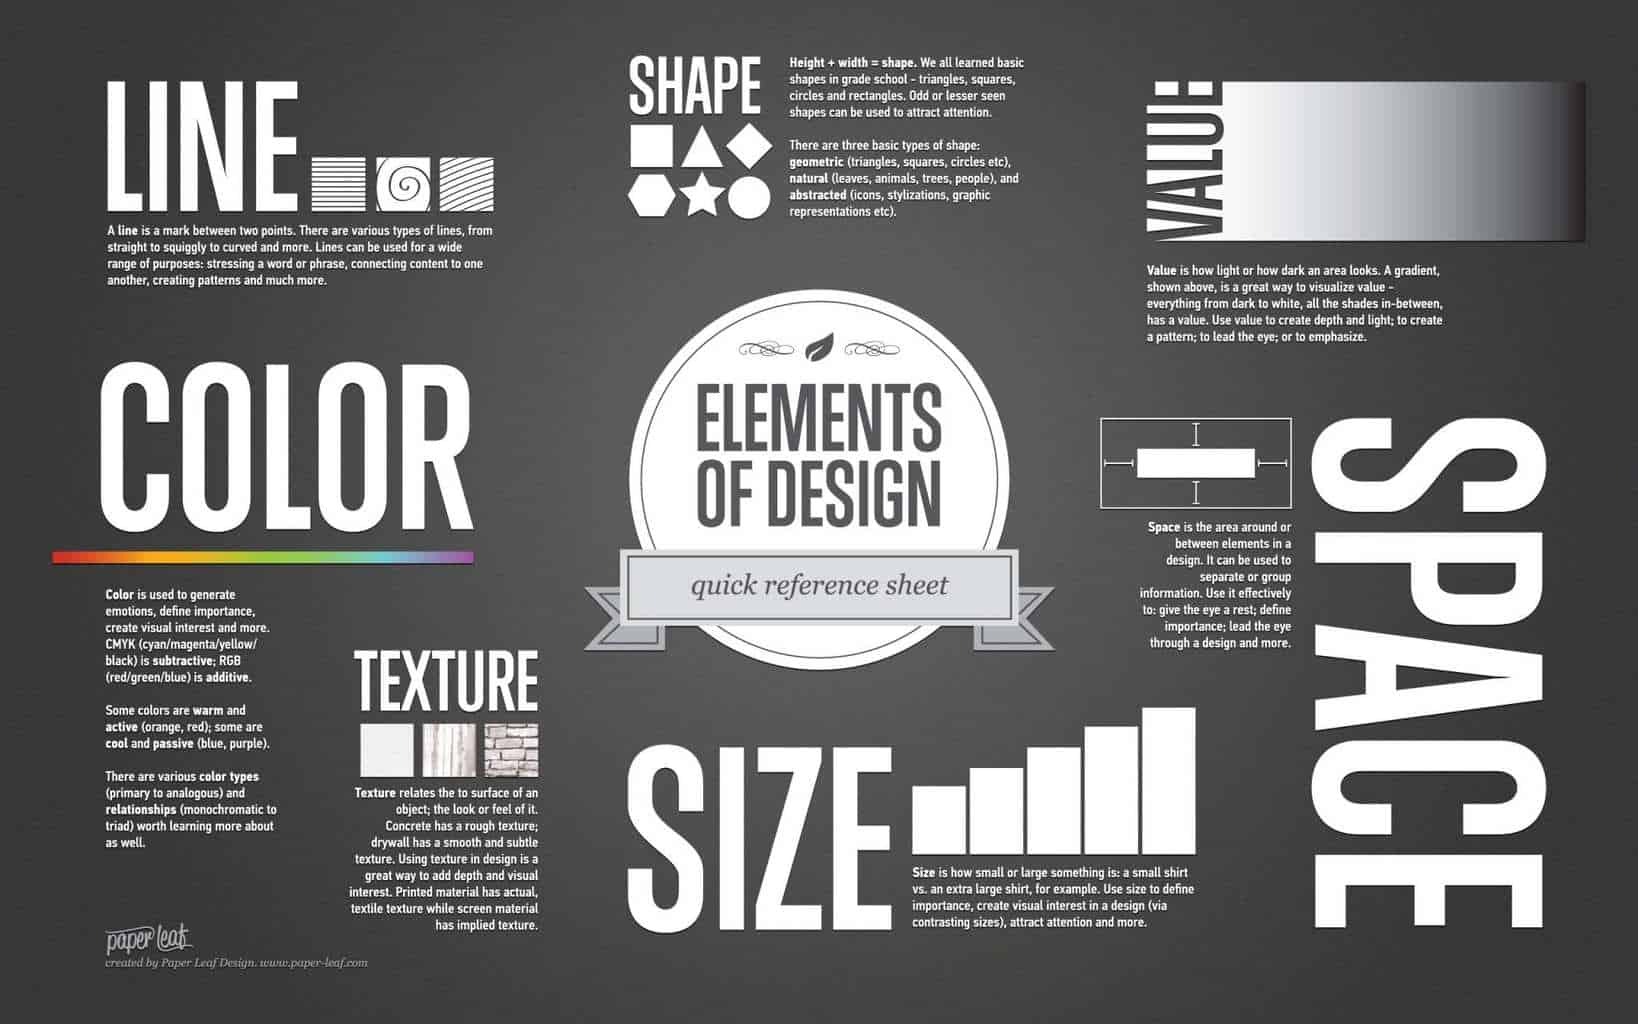 For more design tips and must-do's, check out this great infographic.